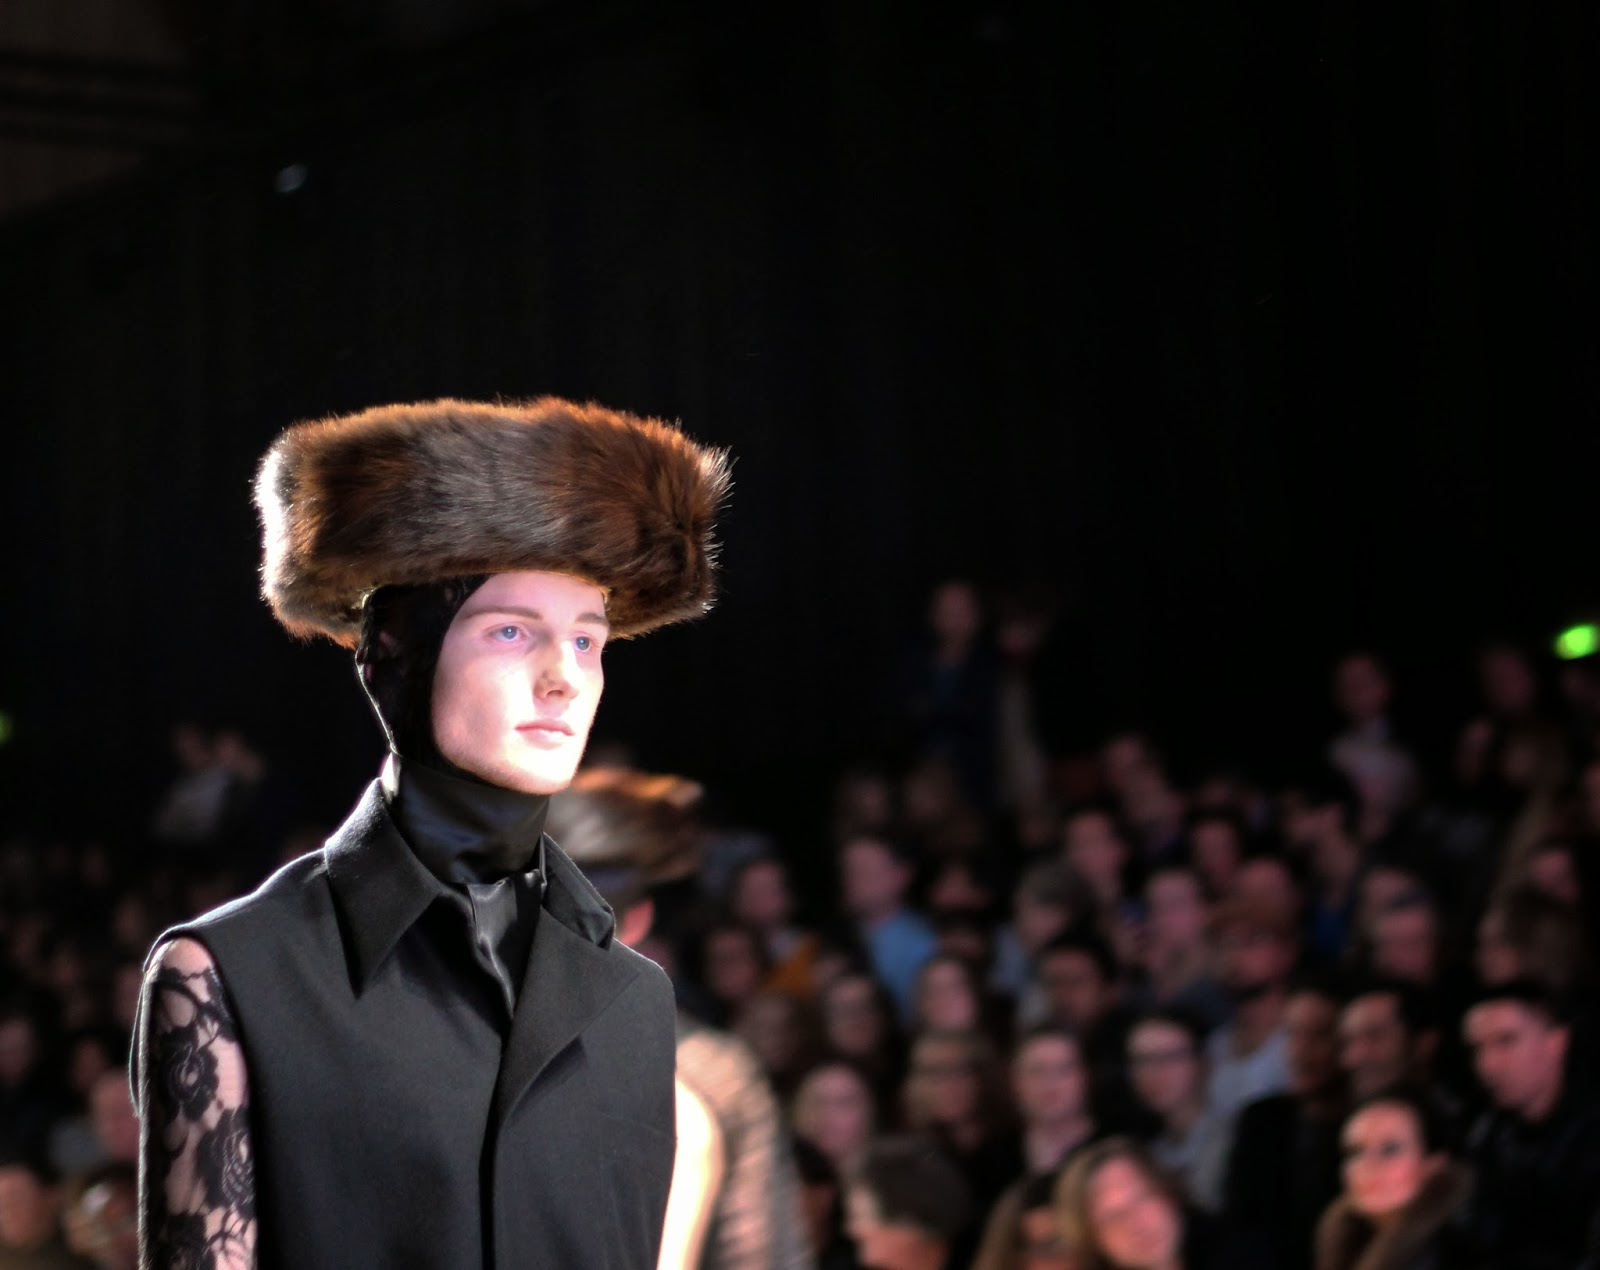 mercedes benz fashion week amsterdam 2014 aziz bekkaoui